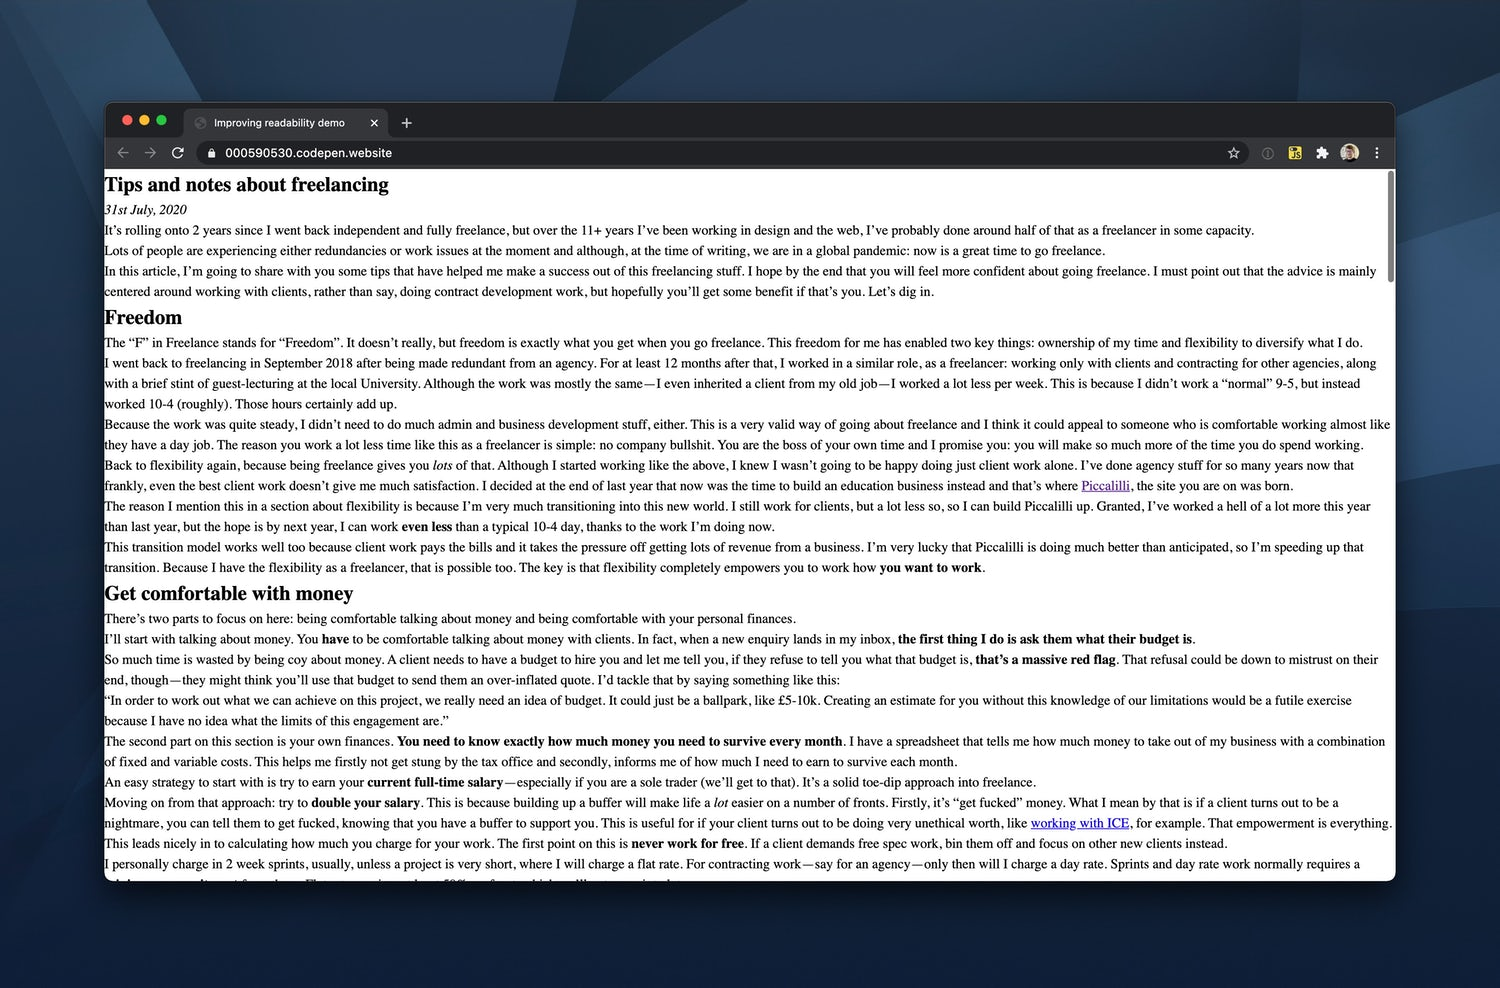 The HTML-only version of our article